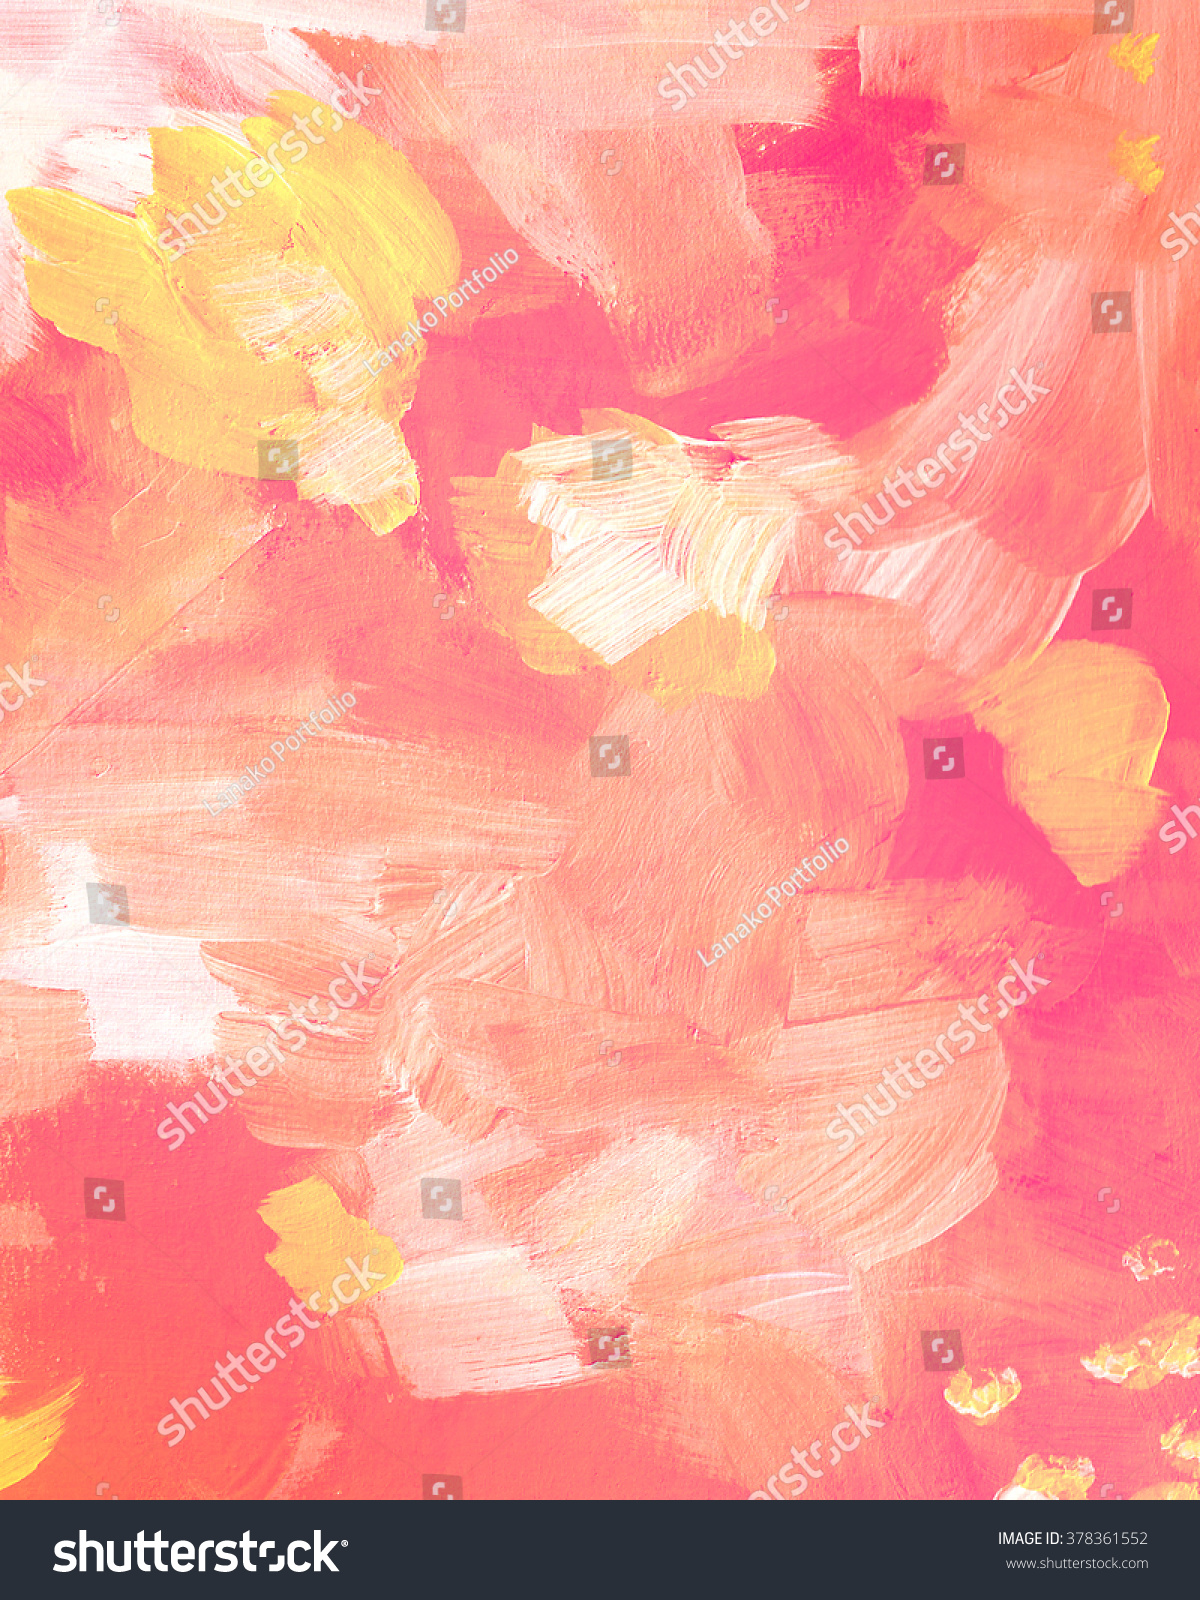 Yellow pink acrylic paint texture abstract stock for Acrylic background techniques